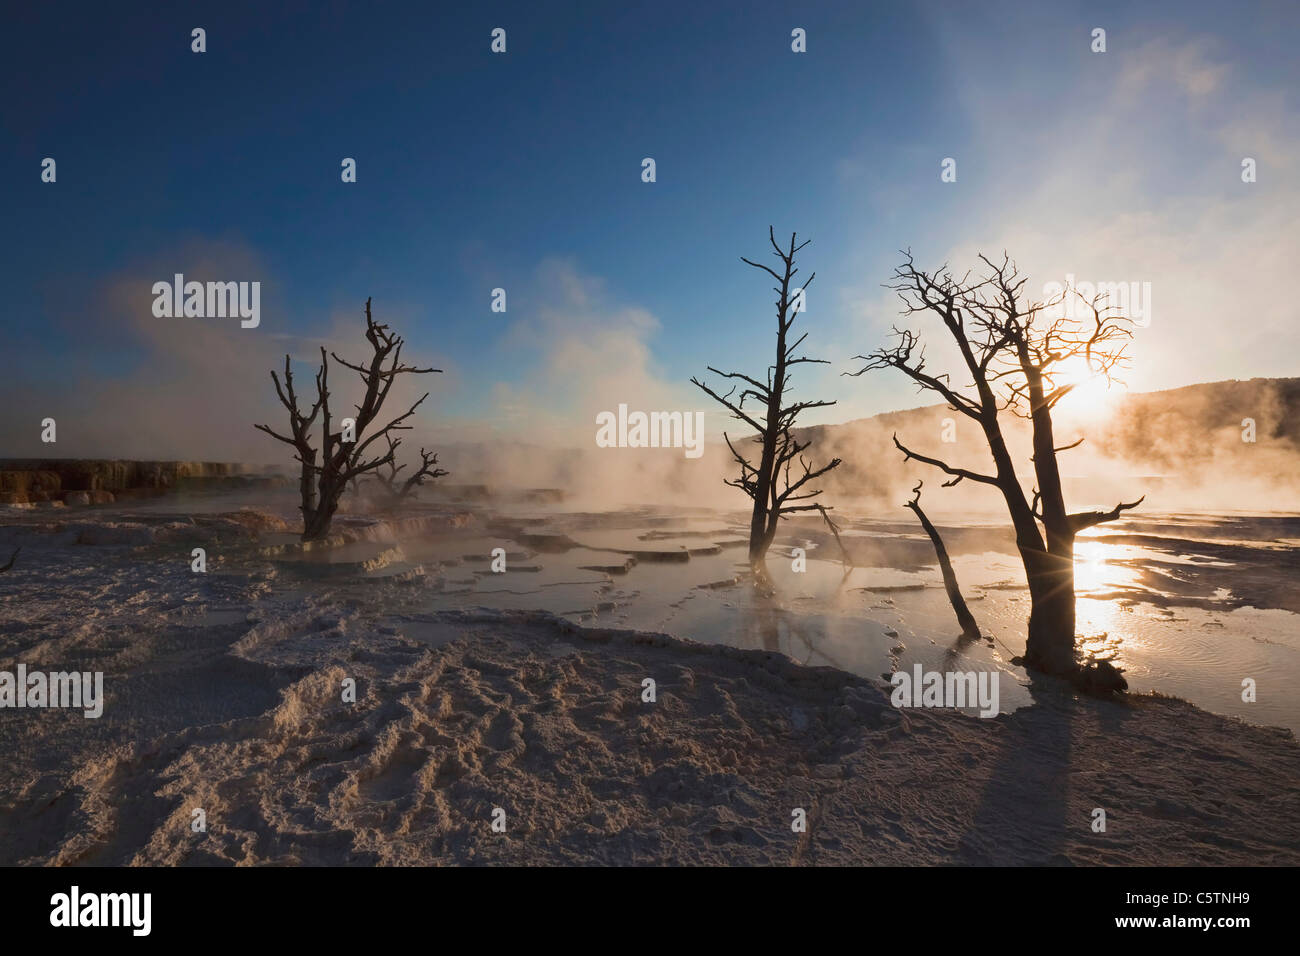 USA, Wyoming, Yellowstone National Park, Mammoth Hot Springs Terrace - Stock Image